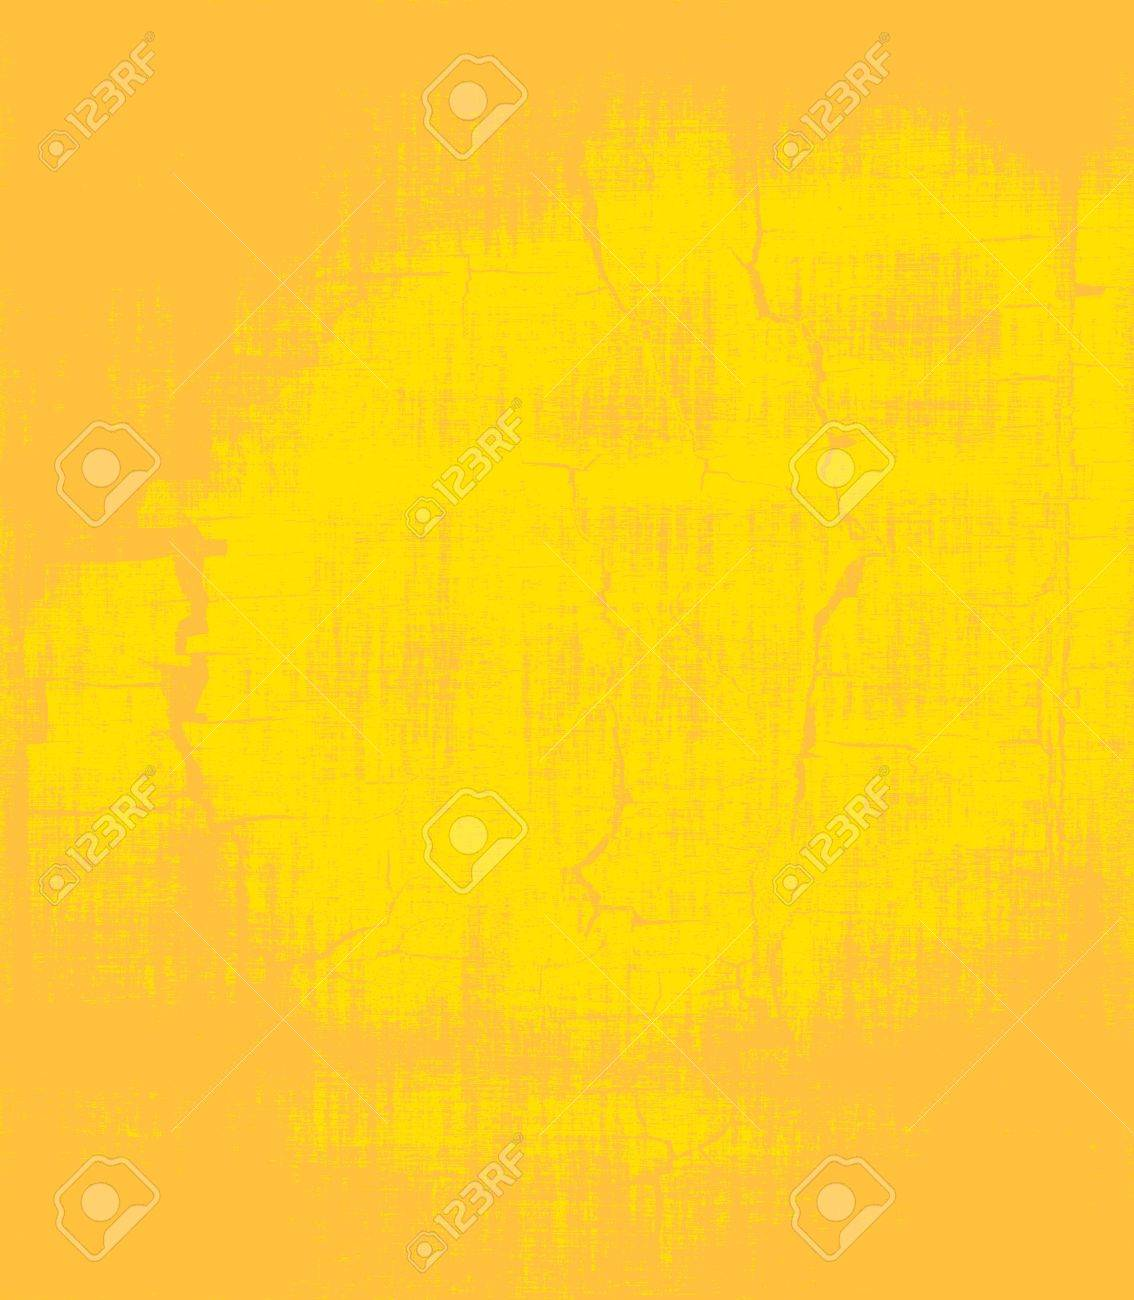 grunge yellow painted wall texture background Stock Photo - 14294992